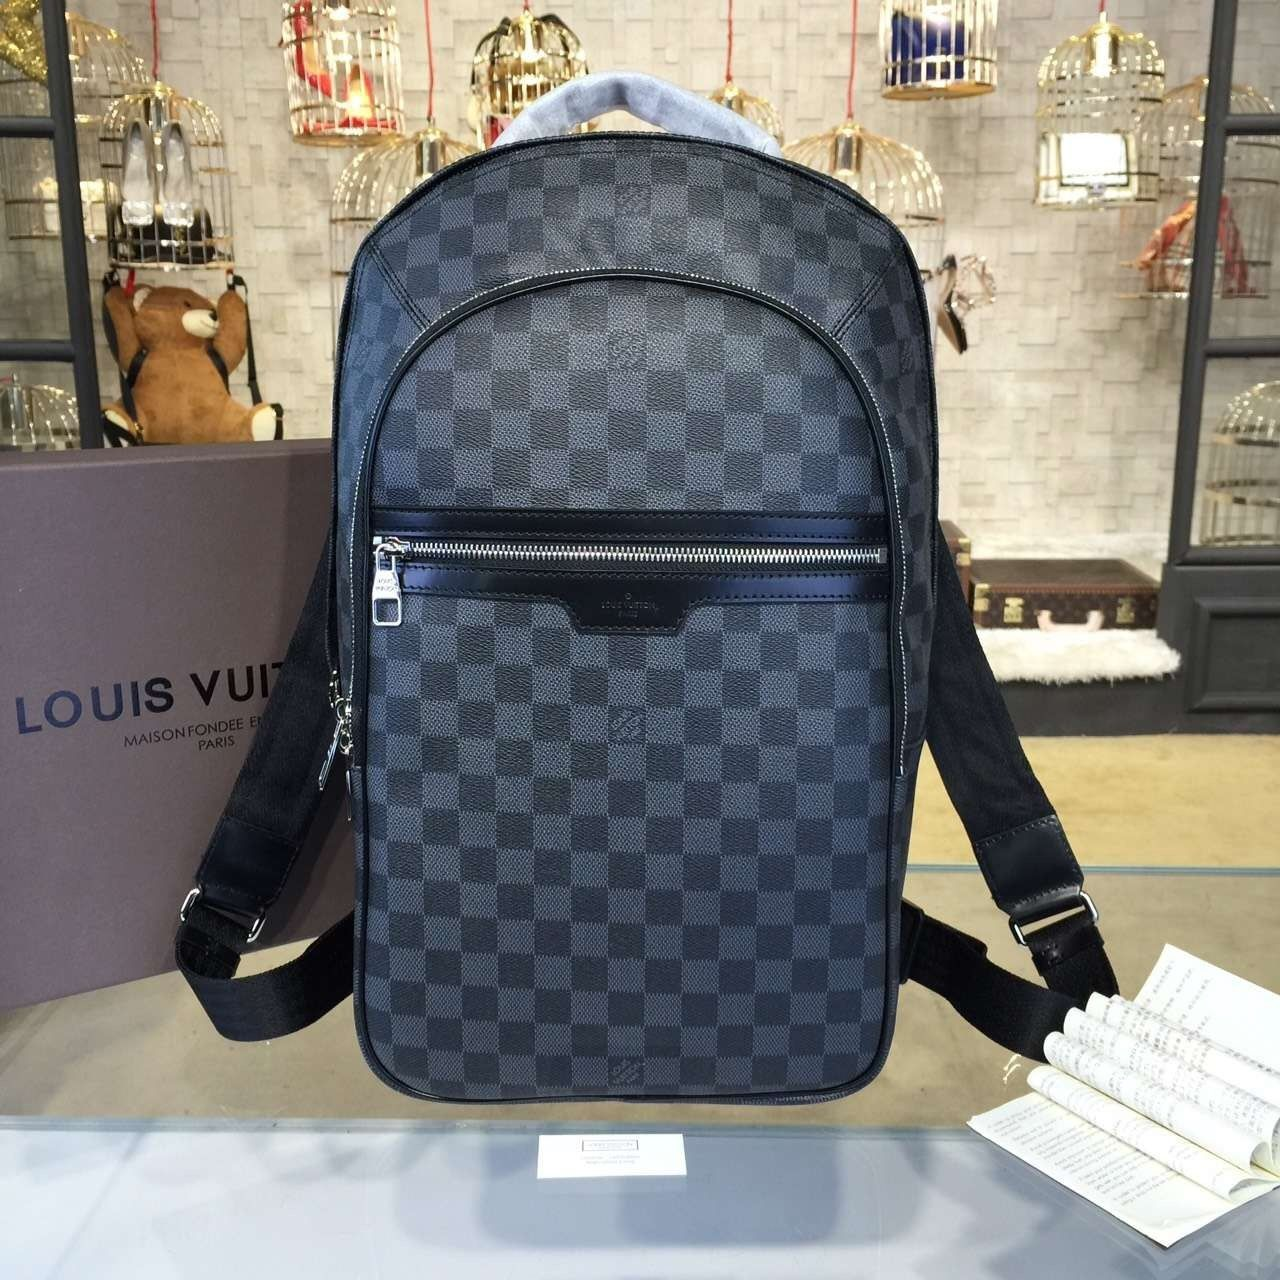 bacae28073f1 Louis Vuitton Michael Backpack Damier Graphite Canvas Fall Winter 2016  Collection N58024 - My Luxe Fashions